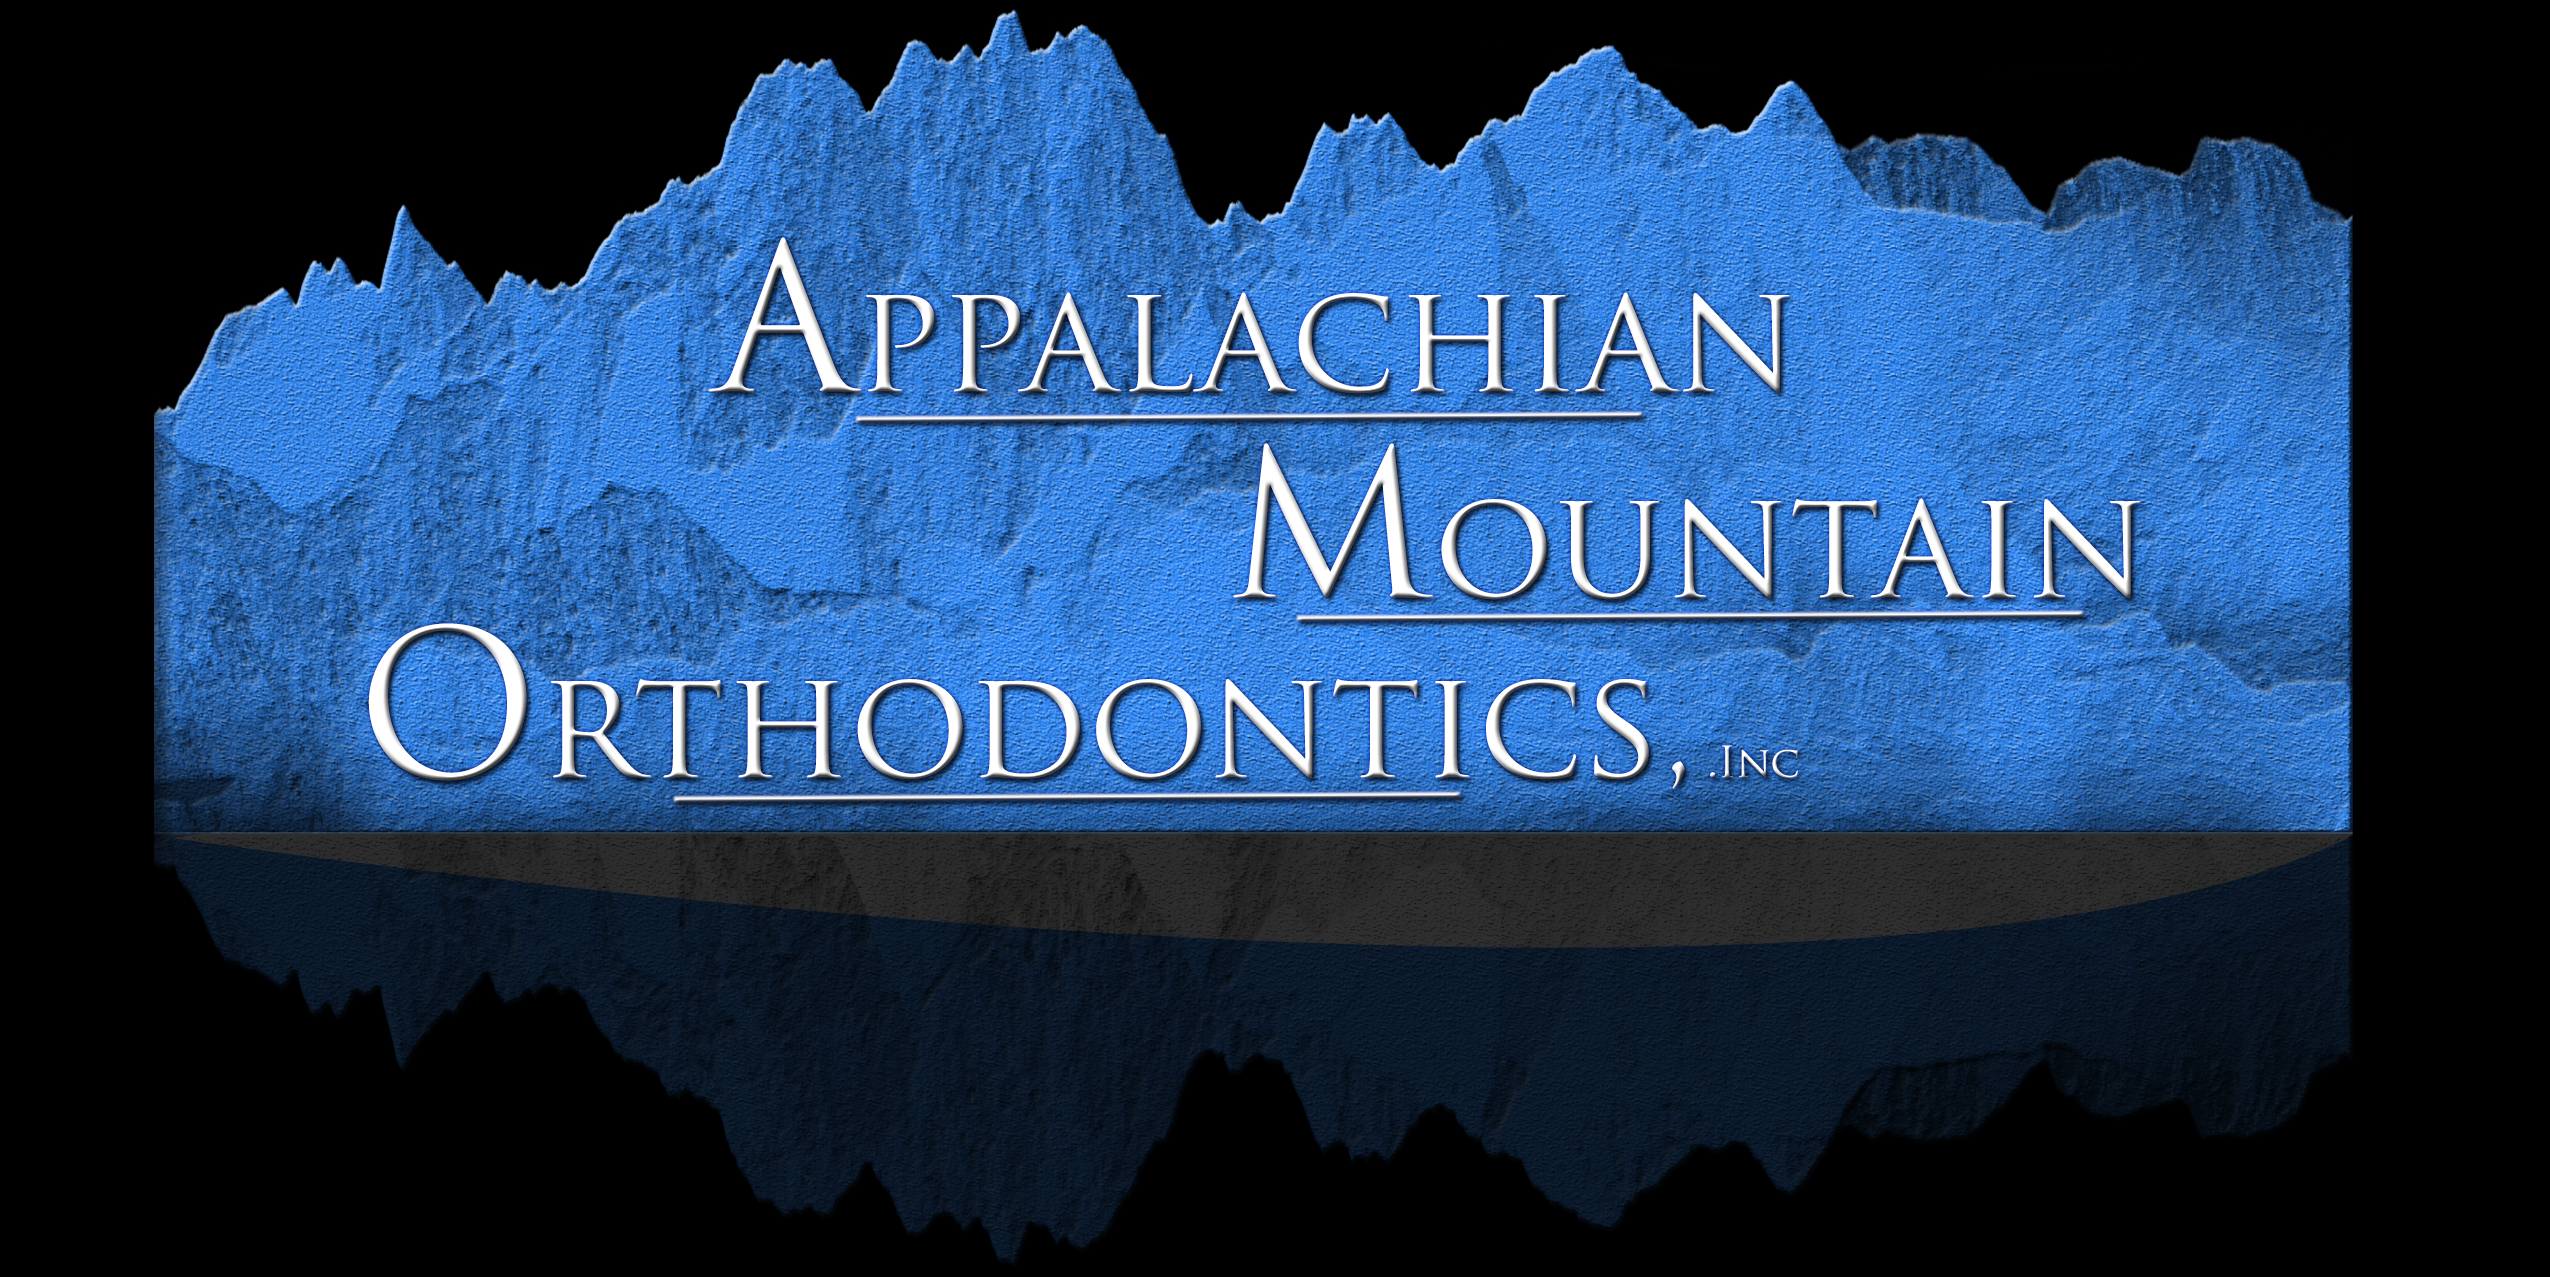 Appalachian Mountain Orthodontics Laboratory